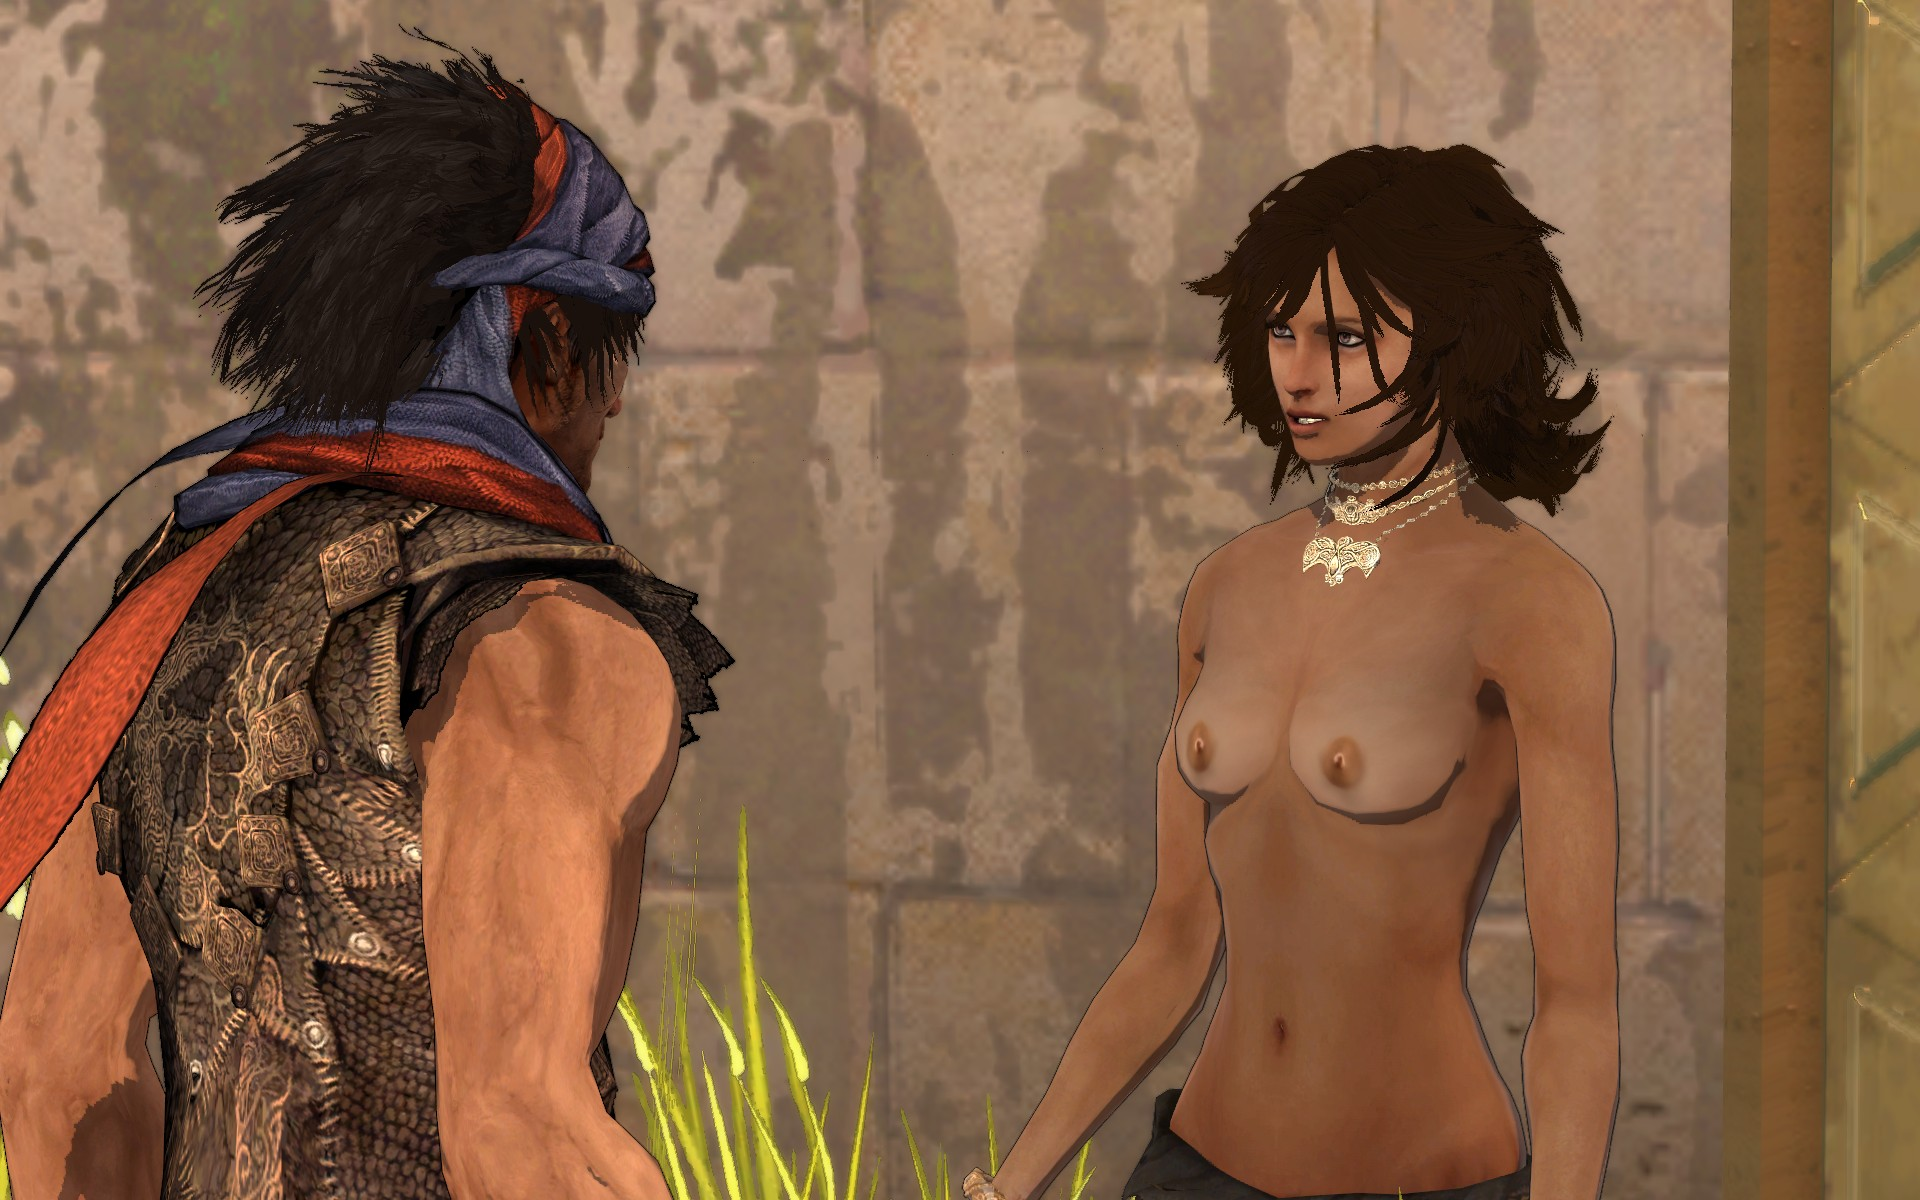 Prince of persia xxx boobs photo nude pics